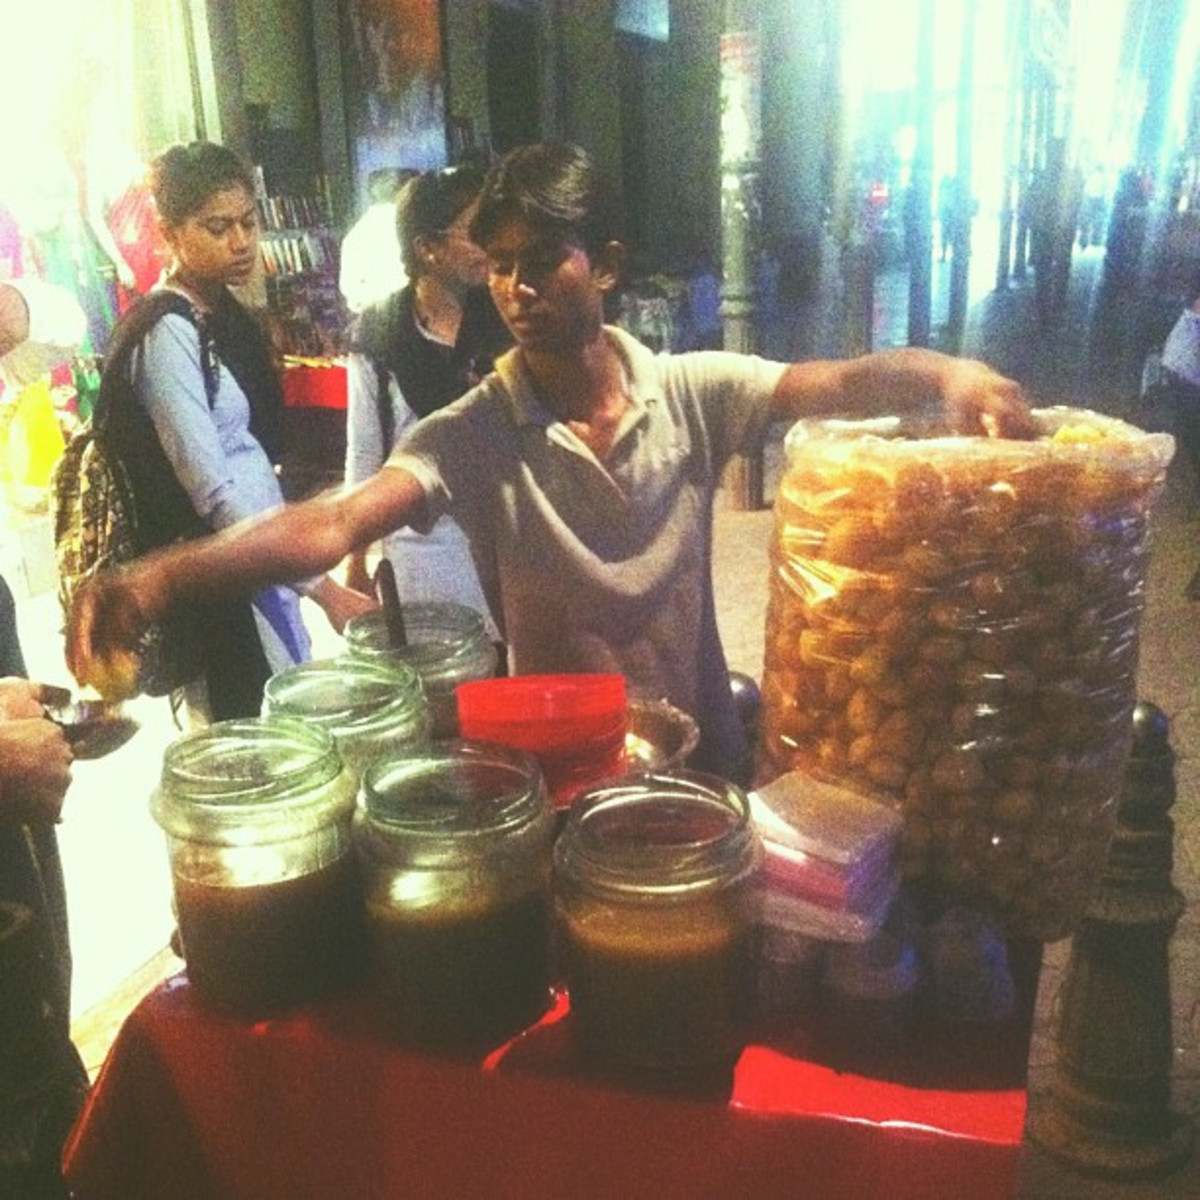 A vendor with the round puris and the different flavored water in different containers in front of him